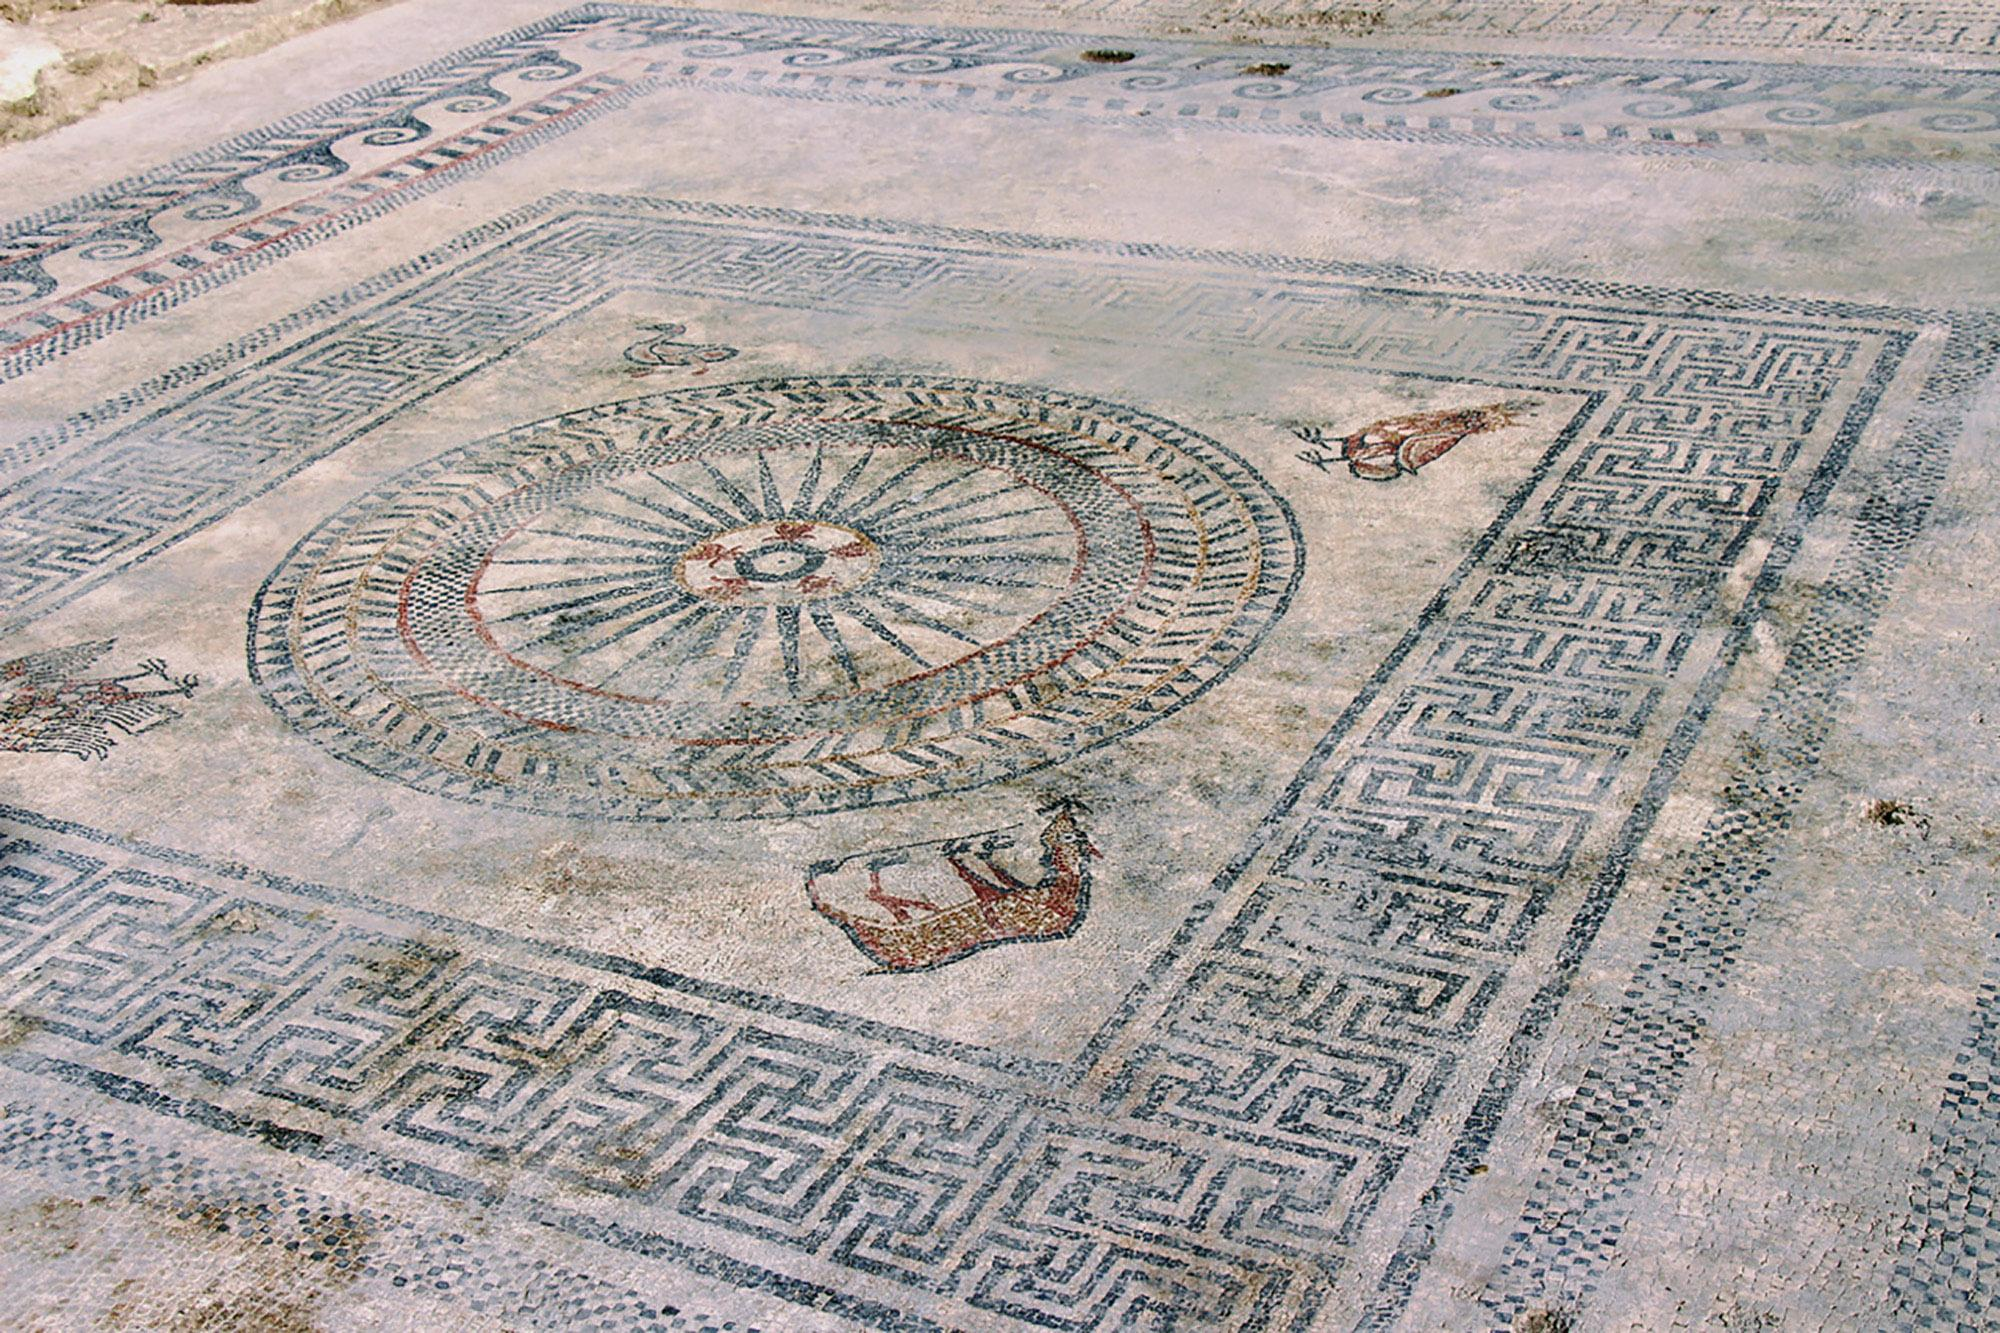 Central motif from Roman mosaic discovered in Uzès (second half of 1st century BC) uncovered in 2017 by researchers from INRAP (French National Institute for Preventive Archaeological Research) – © City of Uzès